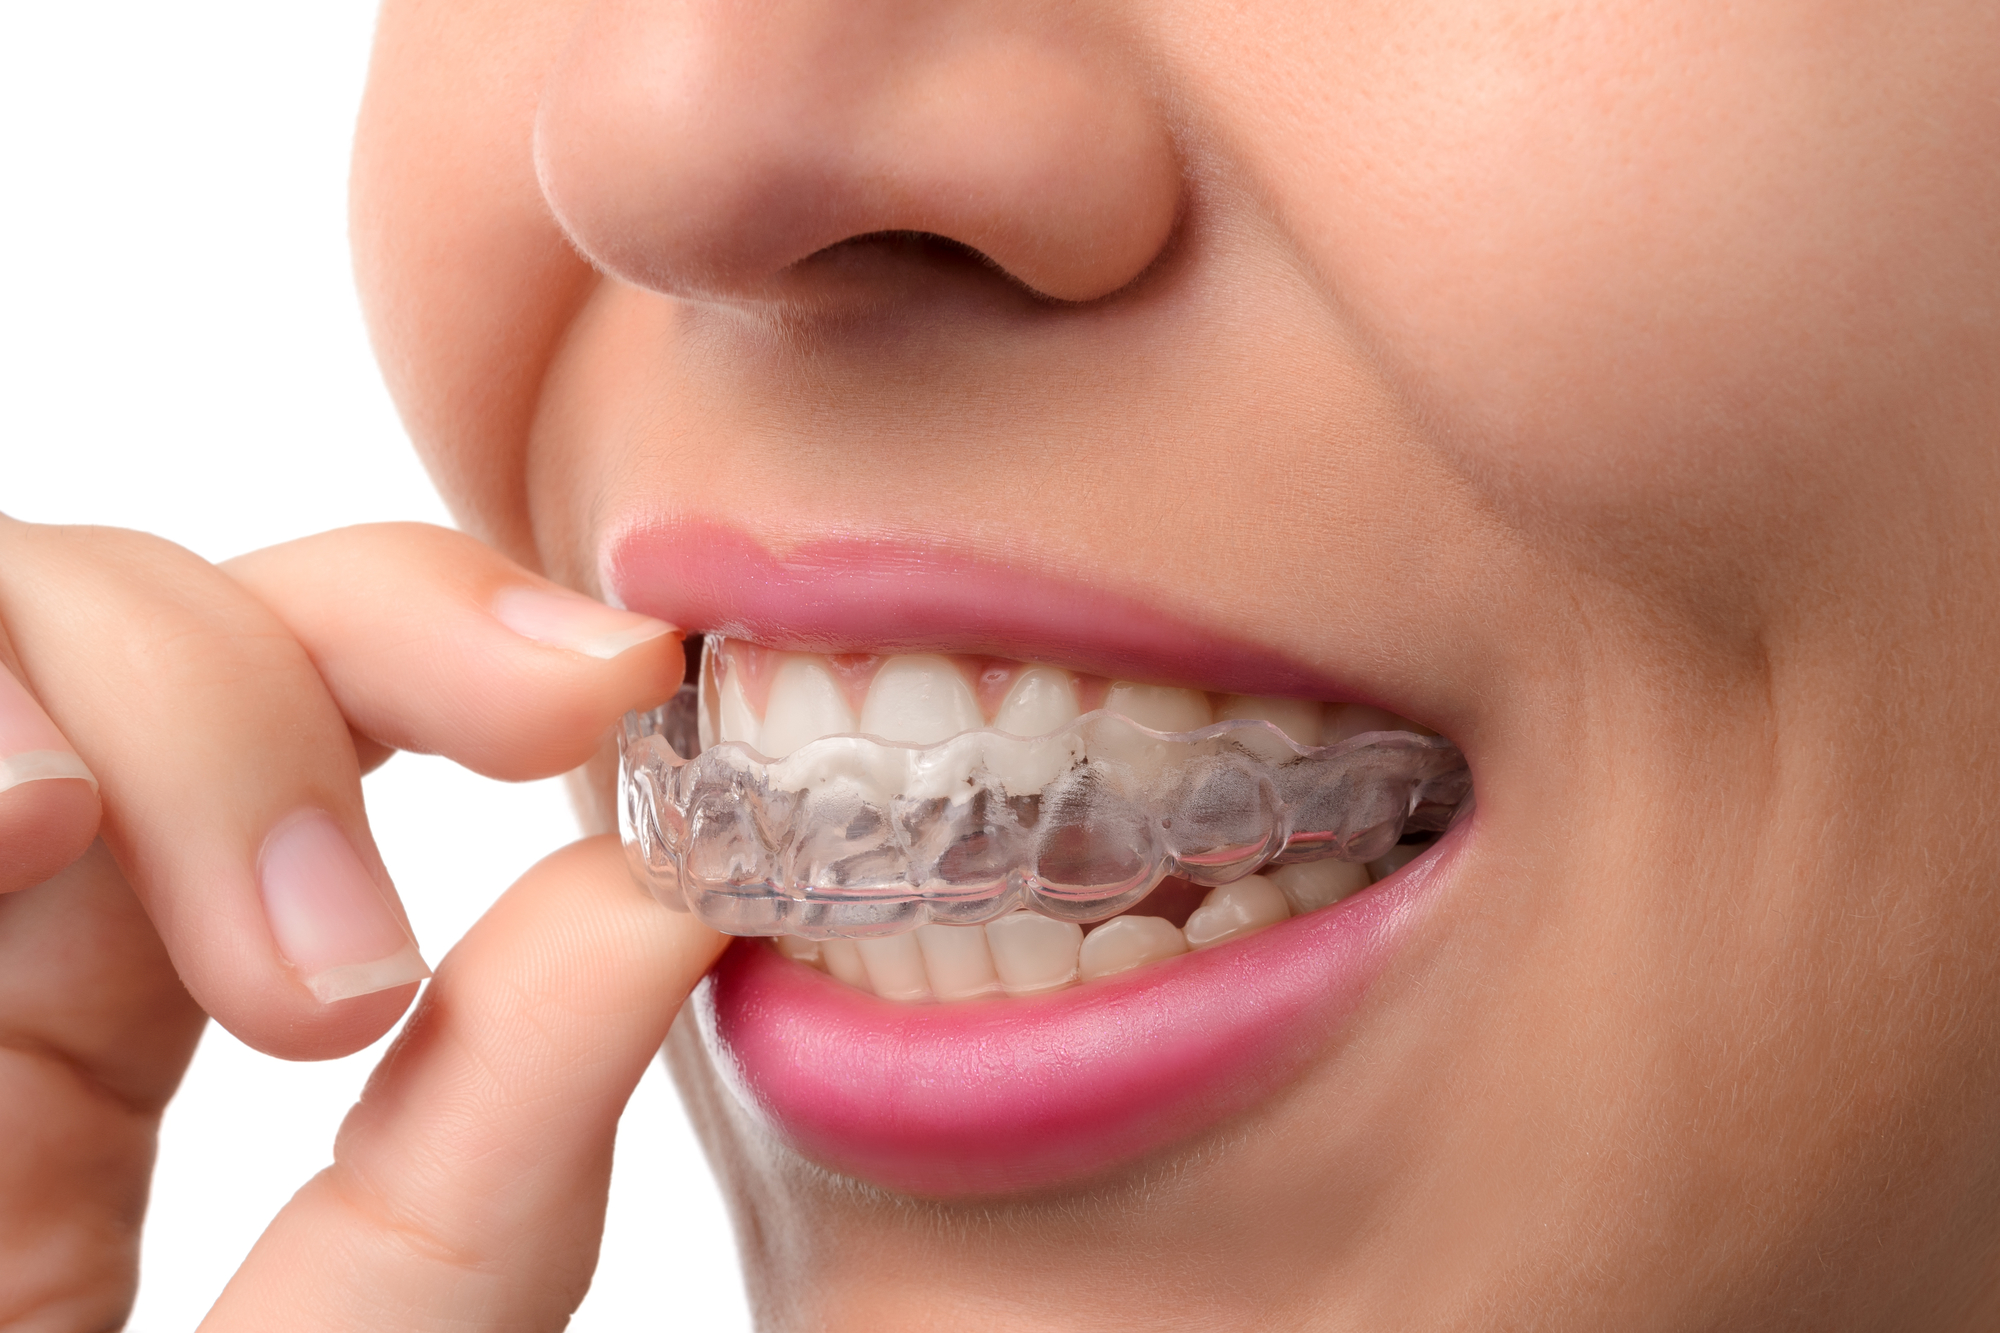 who offers the best invisalign jupiter?